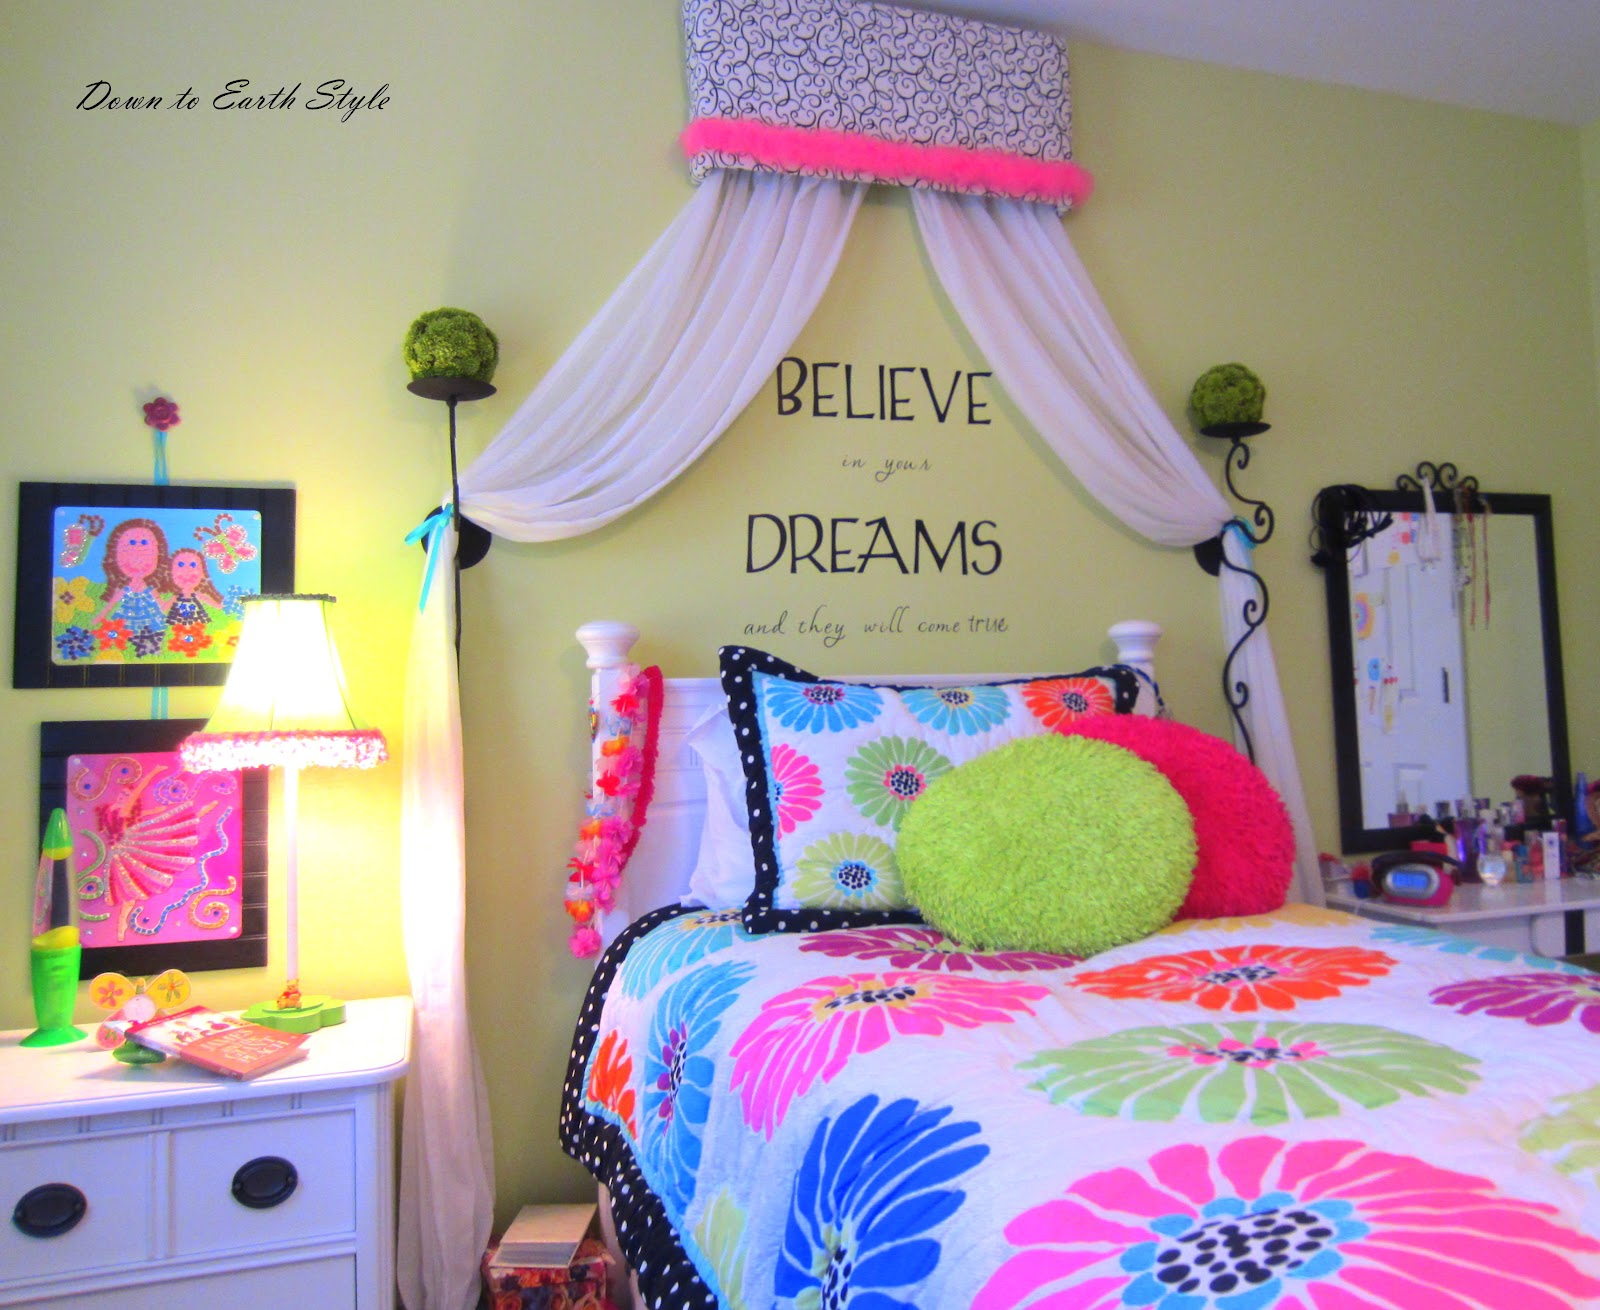 Down to earth style tween girl room - Cute bedroom ideas for tweens ...